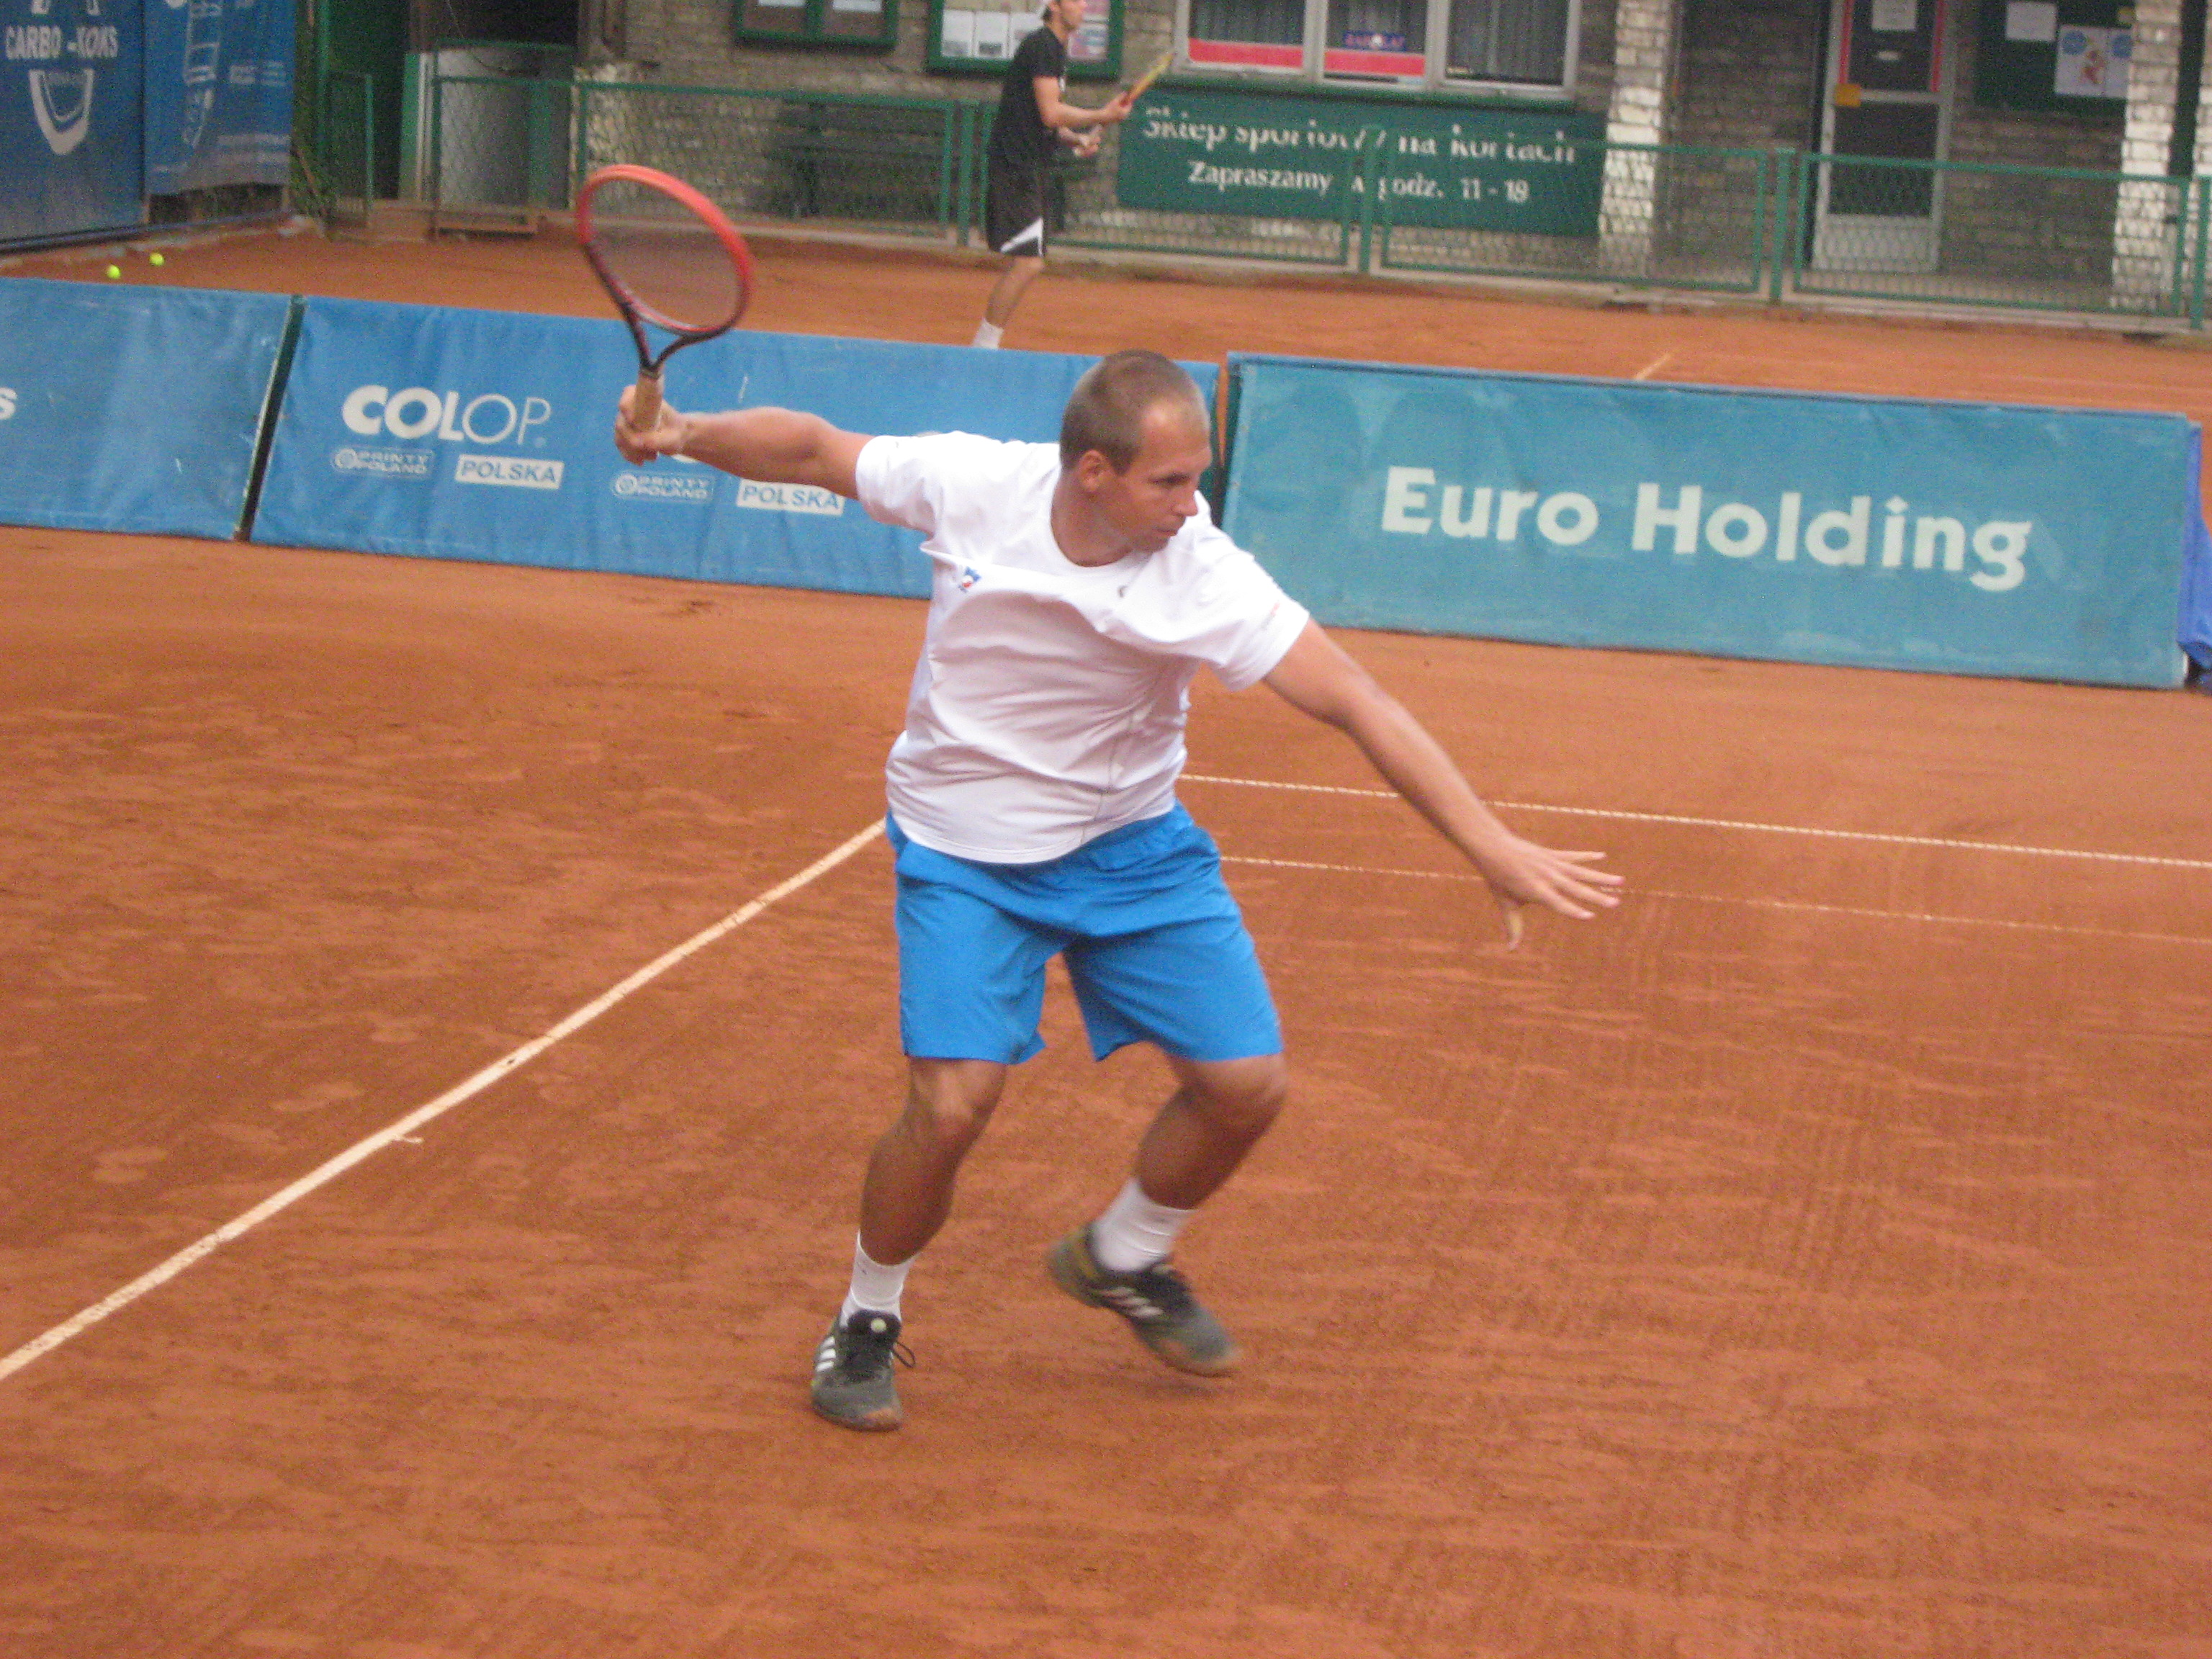 files/galeria/2014/ITF Futures Bytom Cup 2014/IMG_9595.JPG